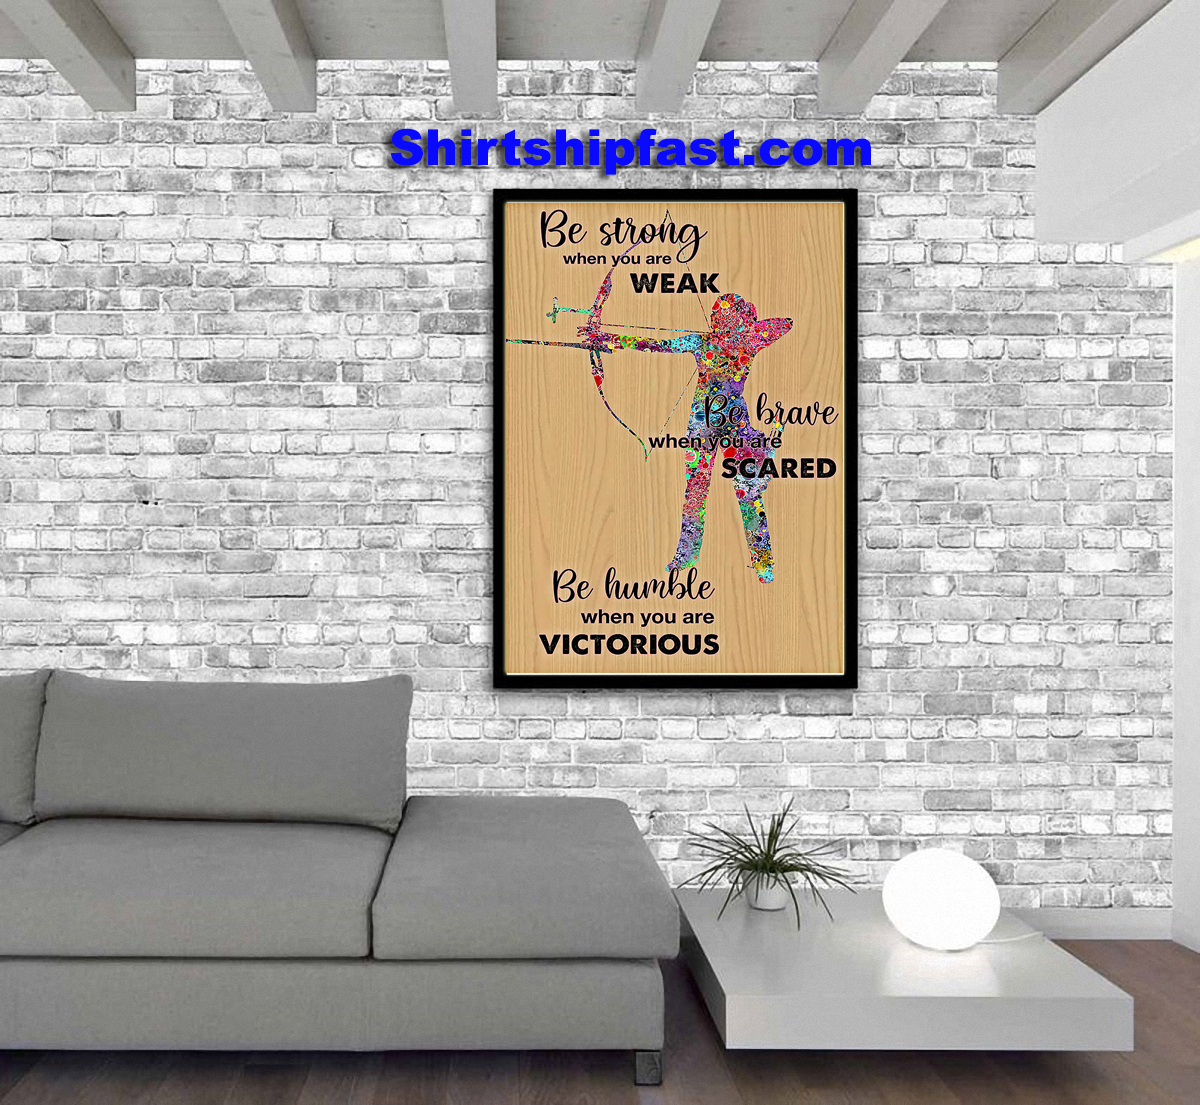 Archery be strong when you are weak poster